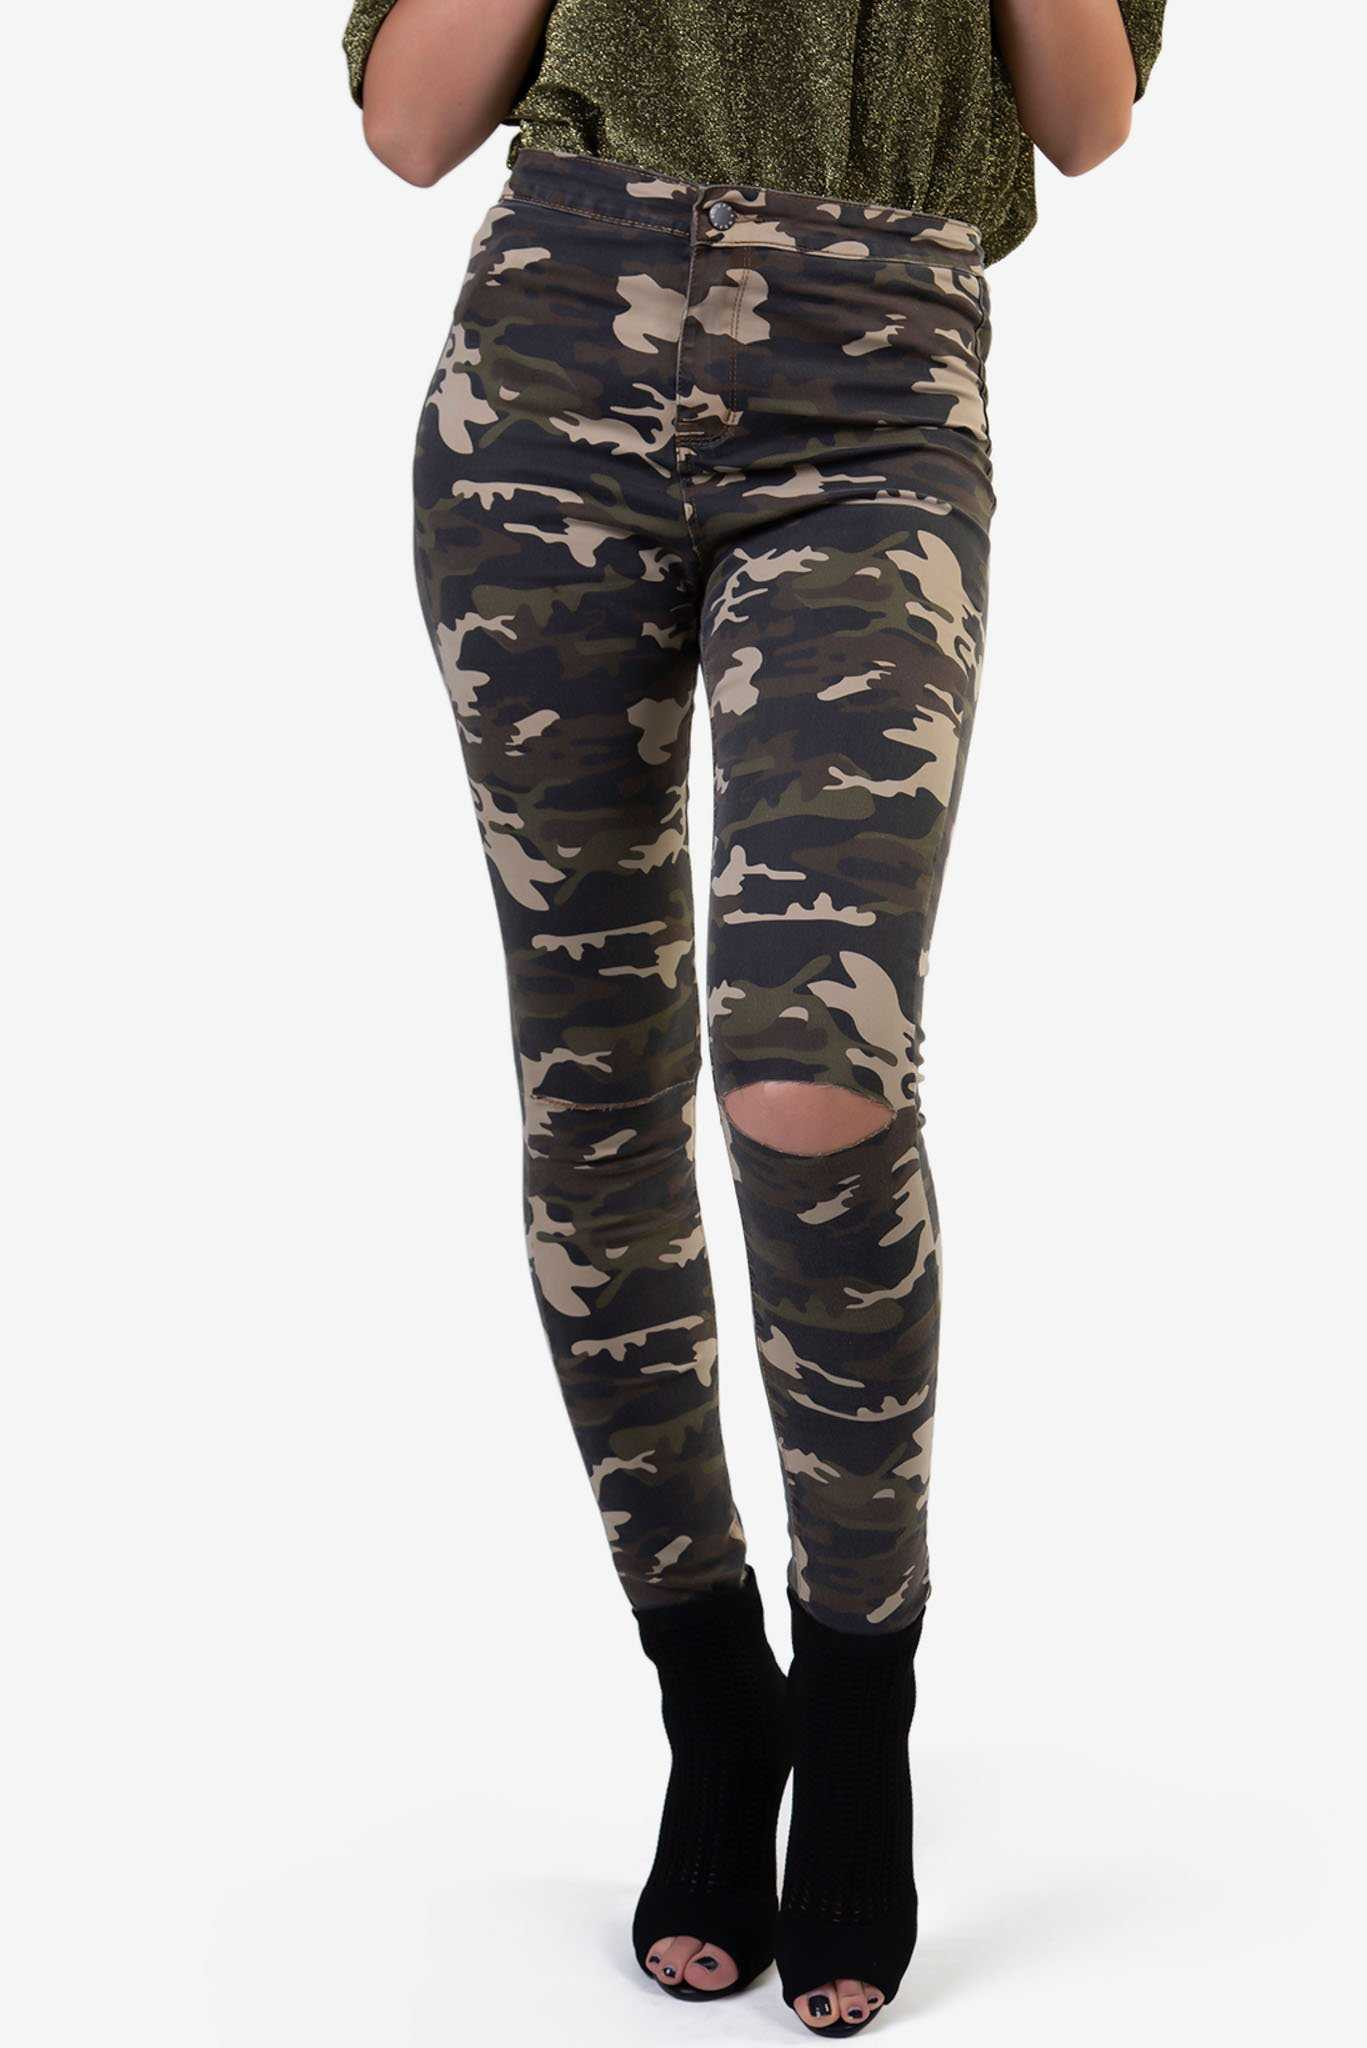 Camo Ripped Pants | Raw Orange